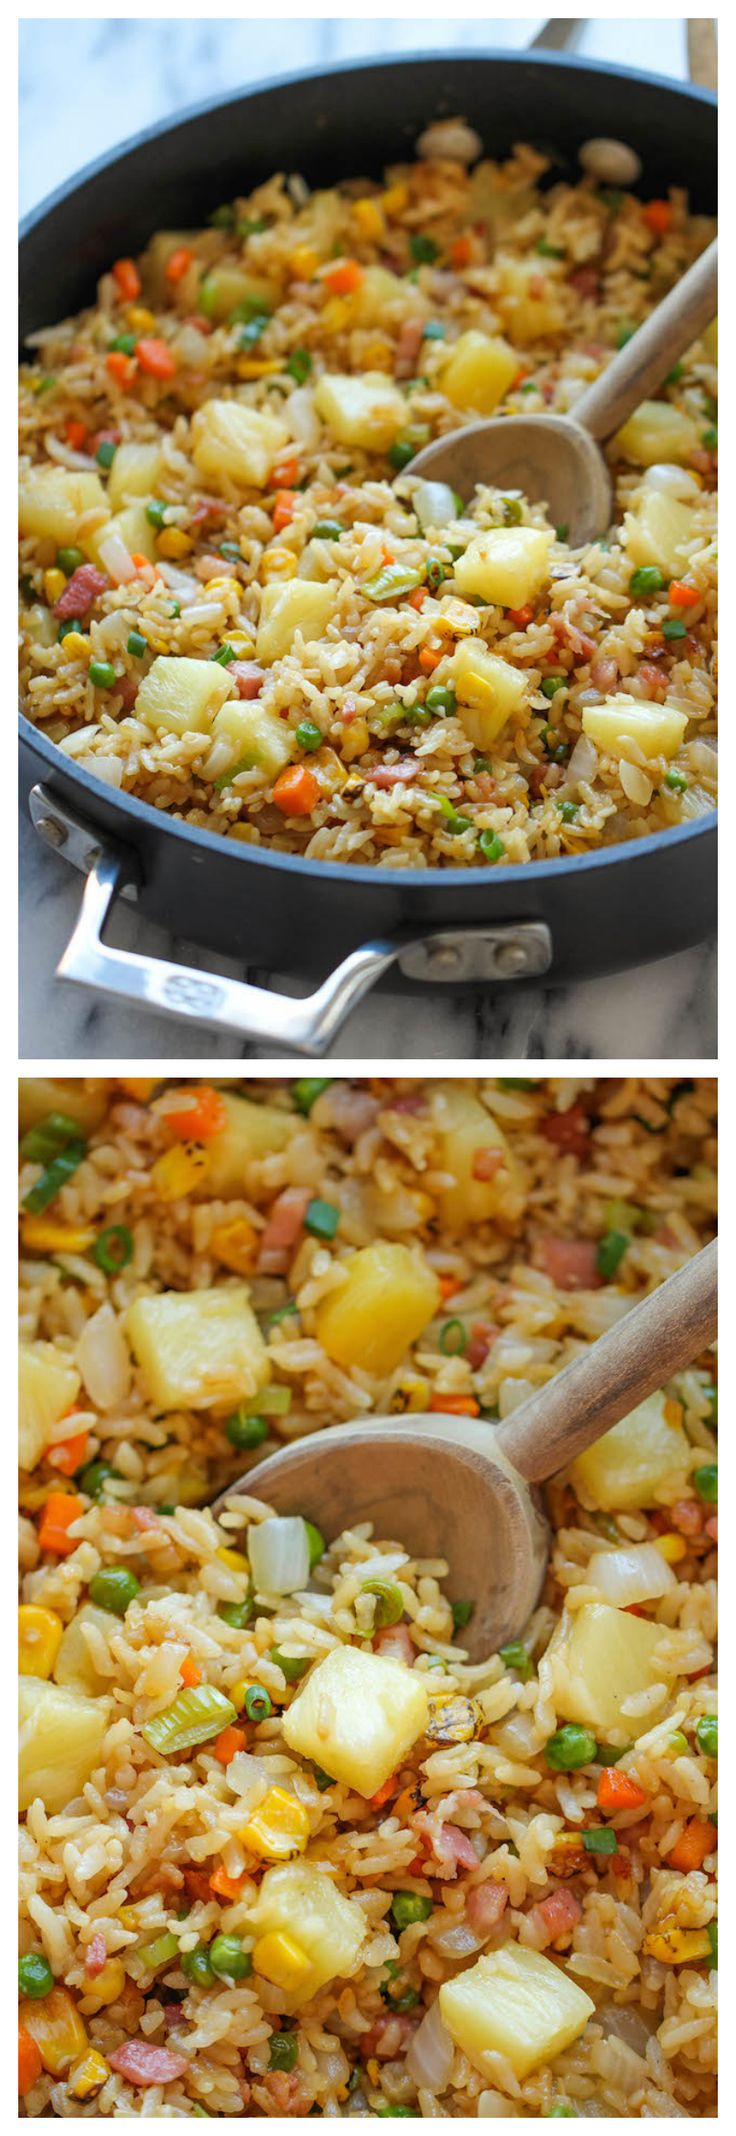 nike free sale   Pineapple Fried Rice  A quick and easy weeknight meal that   s so much cheaper tastier and healthier than take out